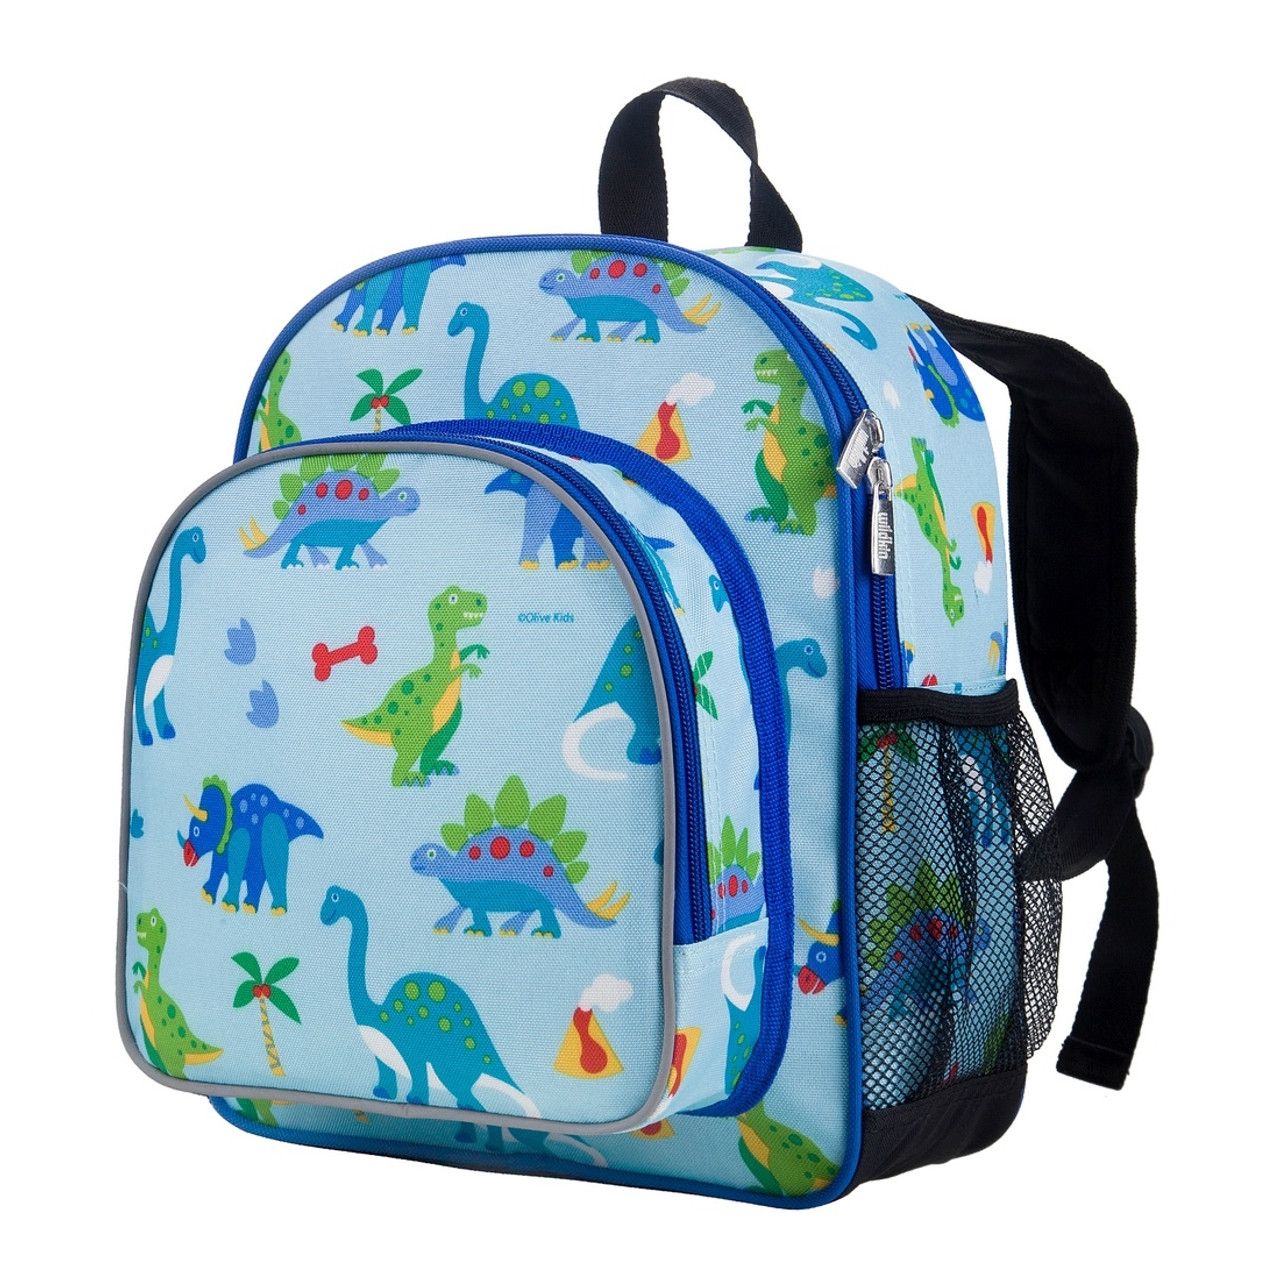 Wildkin Toddler Backpack - Dinosaur Land f43a1f5914